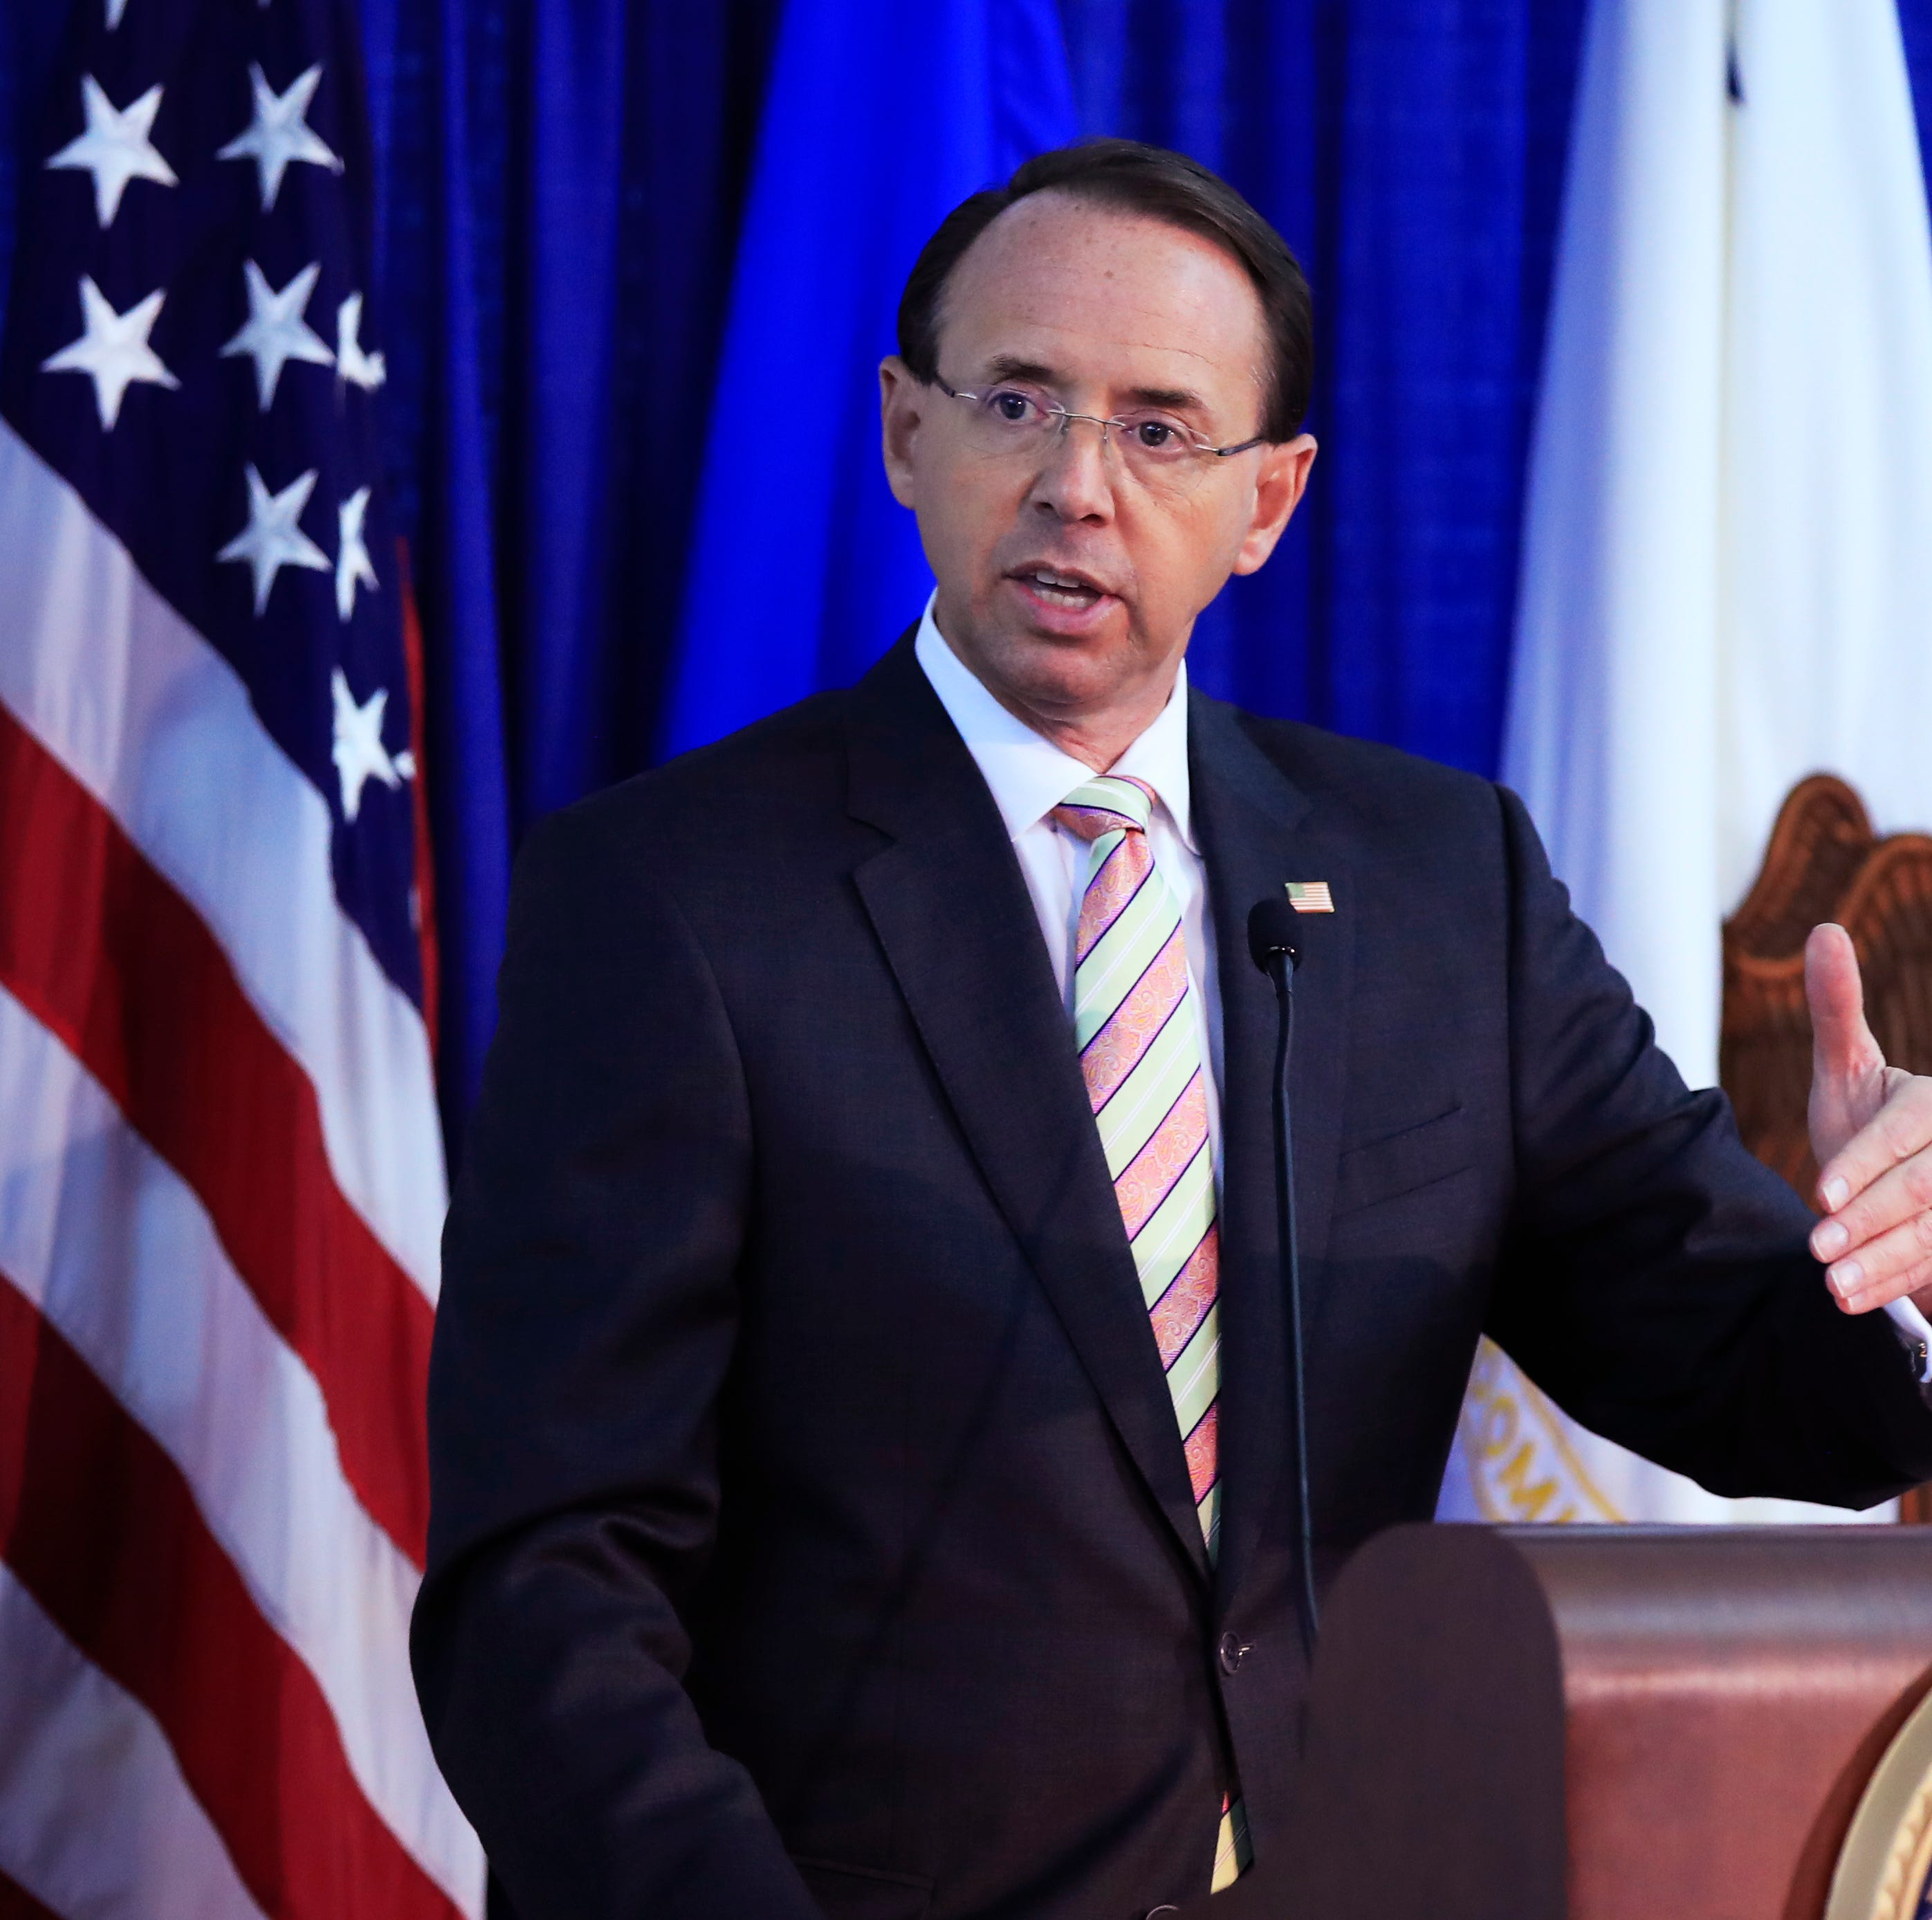 Editorial: Rosenstein may go, but probe must go on